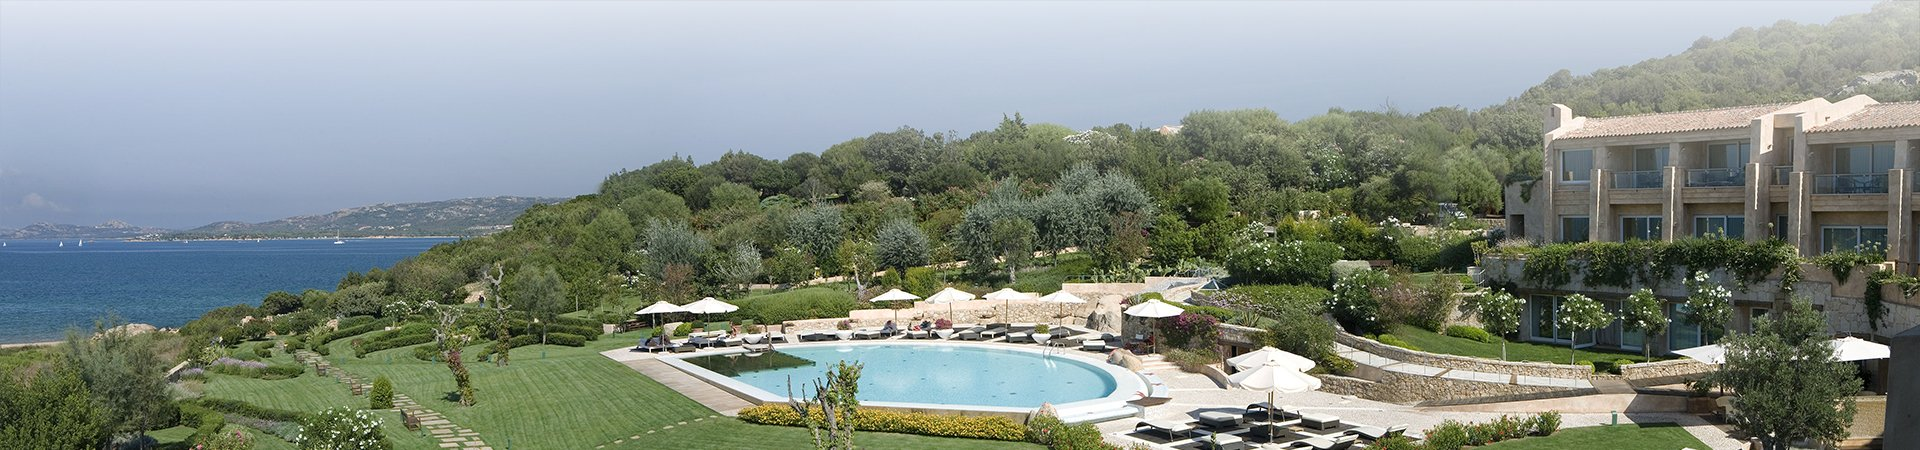 Hotels en Resorts Italie